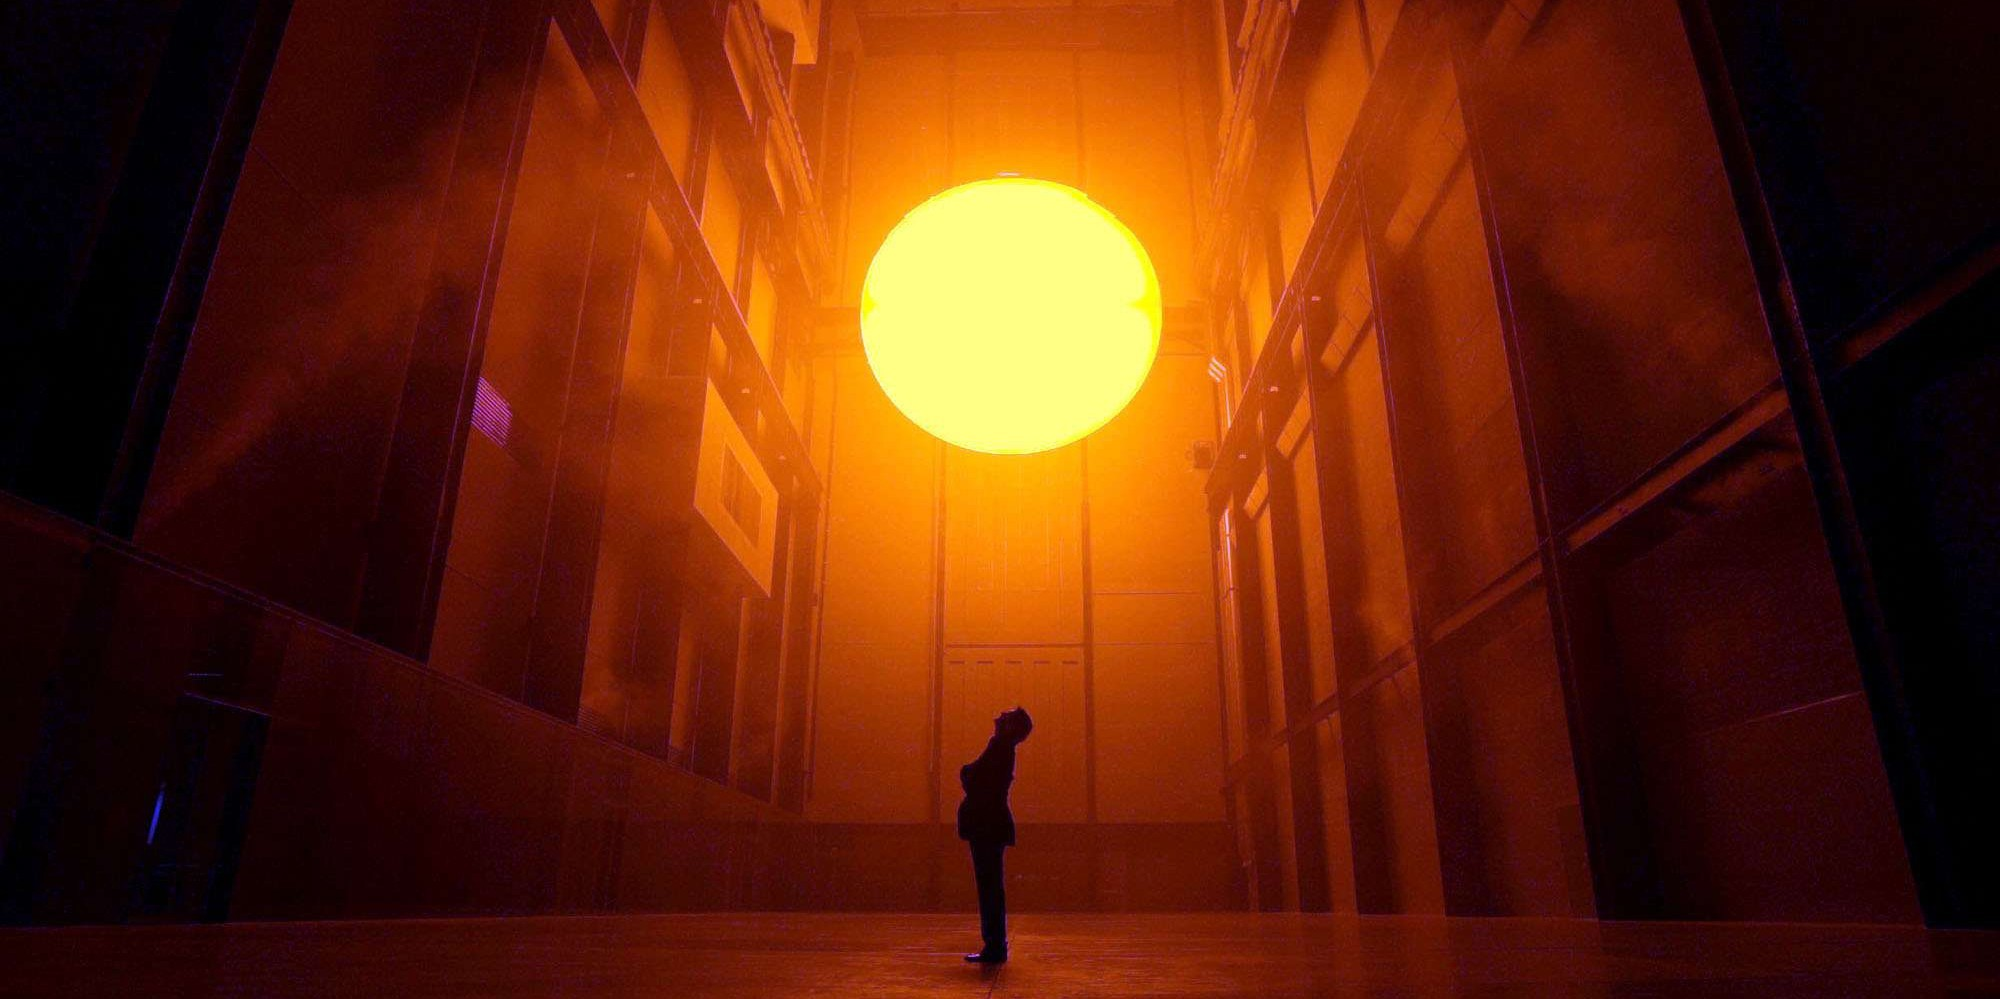 "Danish environmental sculptor Olafur Eliasson, stands in the Turbine Hall at the Tate Modern art museum in London and looks up at his art work entitled ""The Weather Project,"" in this Oct. 15, 2003 file photo. Eliasson has used mirrors, light, sound and mist to create a monochrome space that exposes and confronts the visitor."